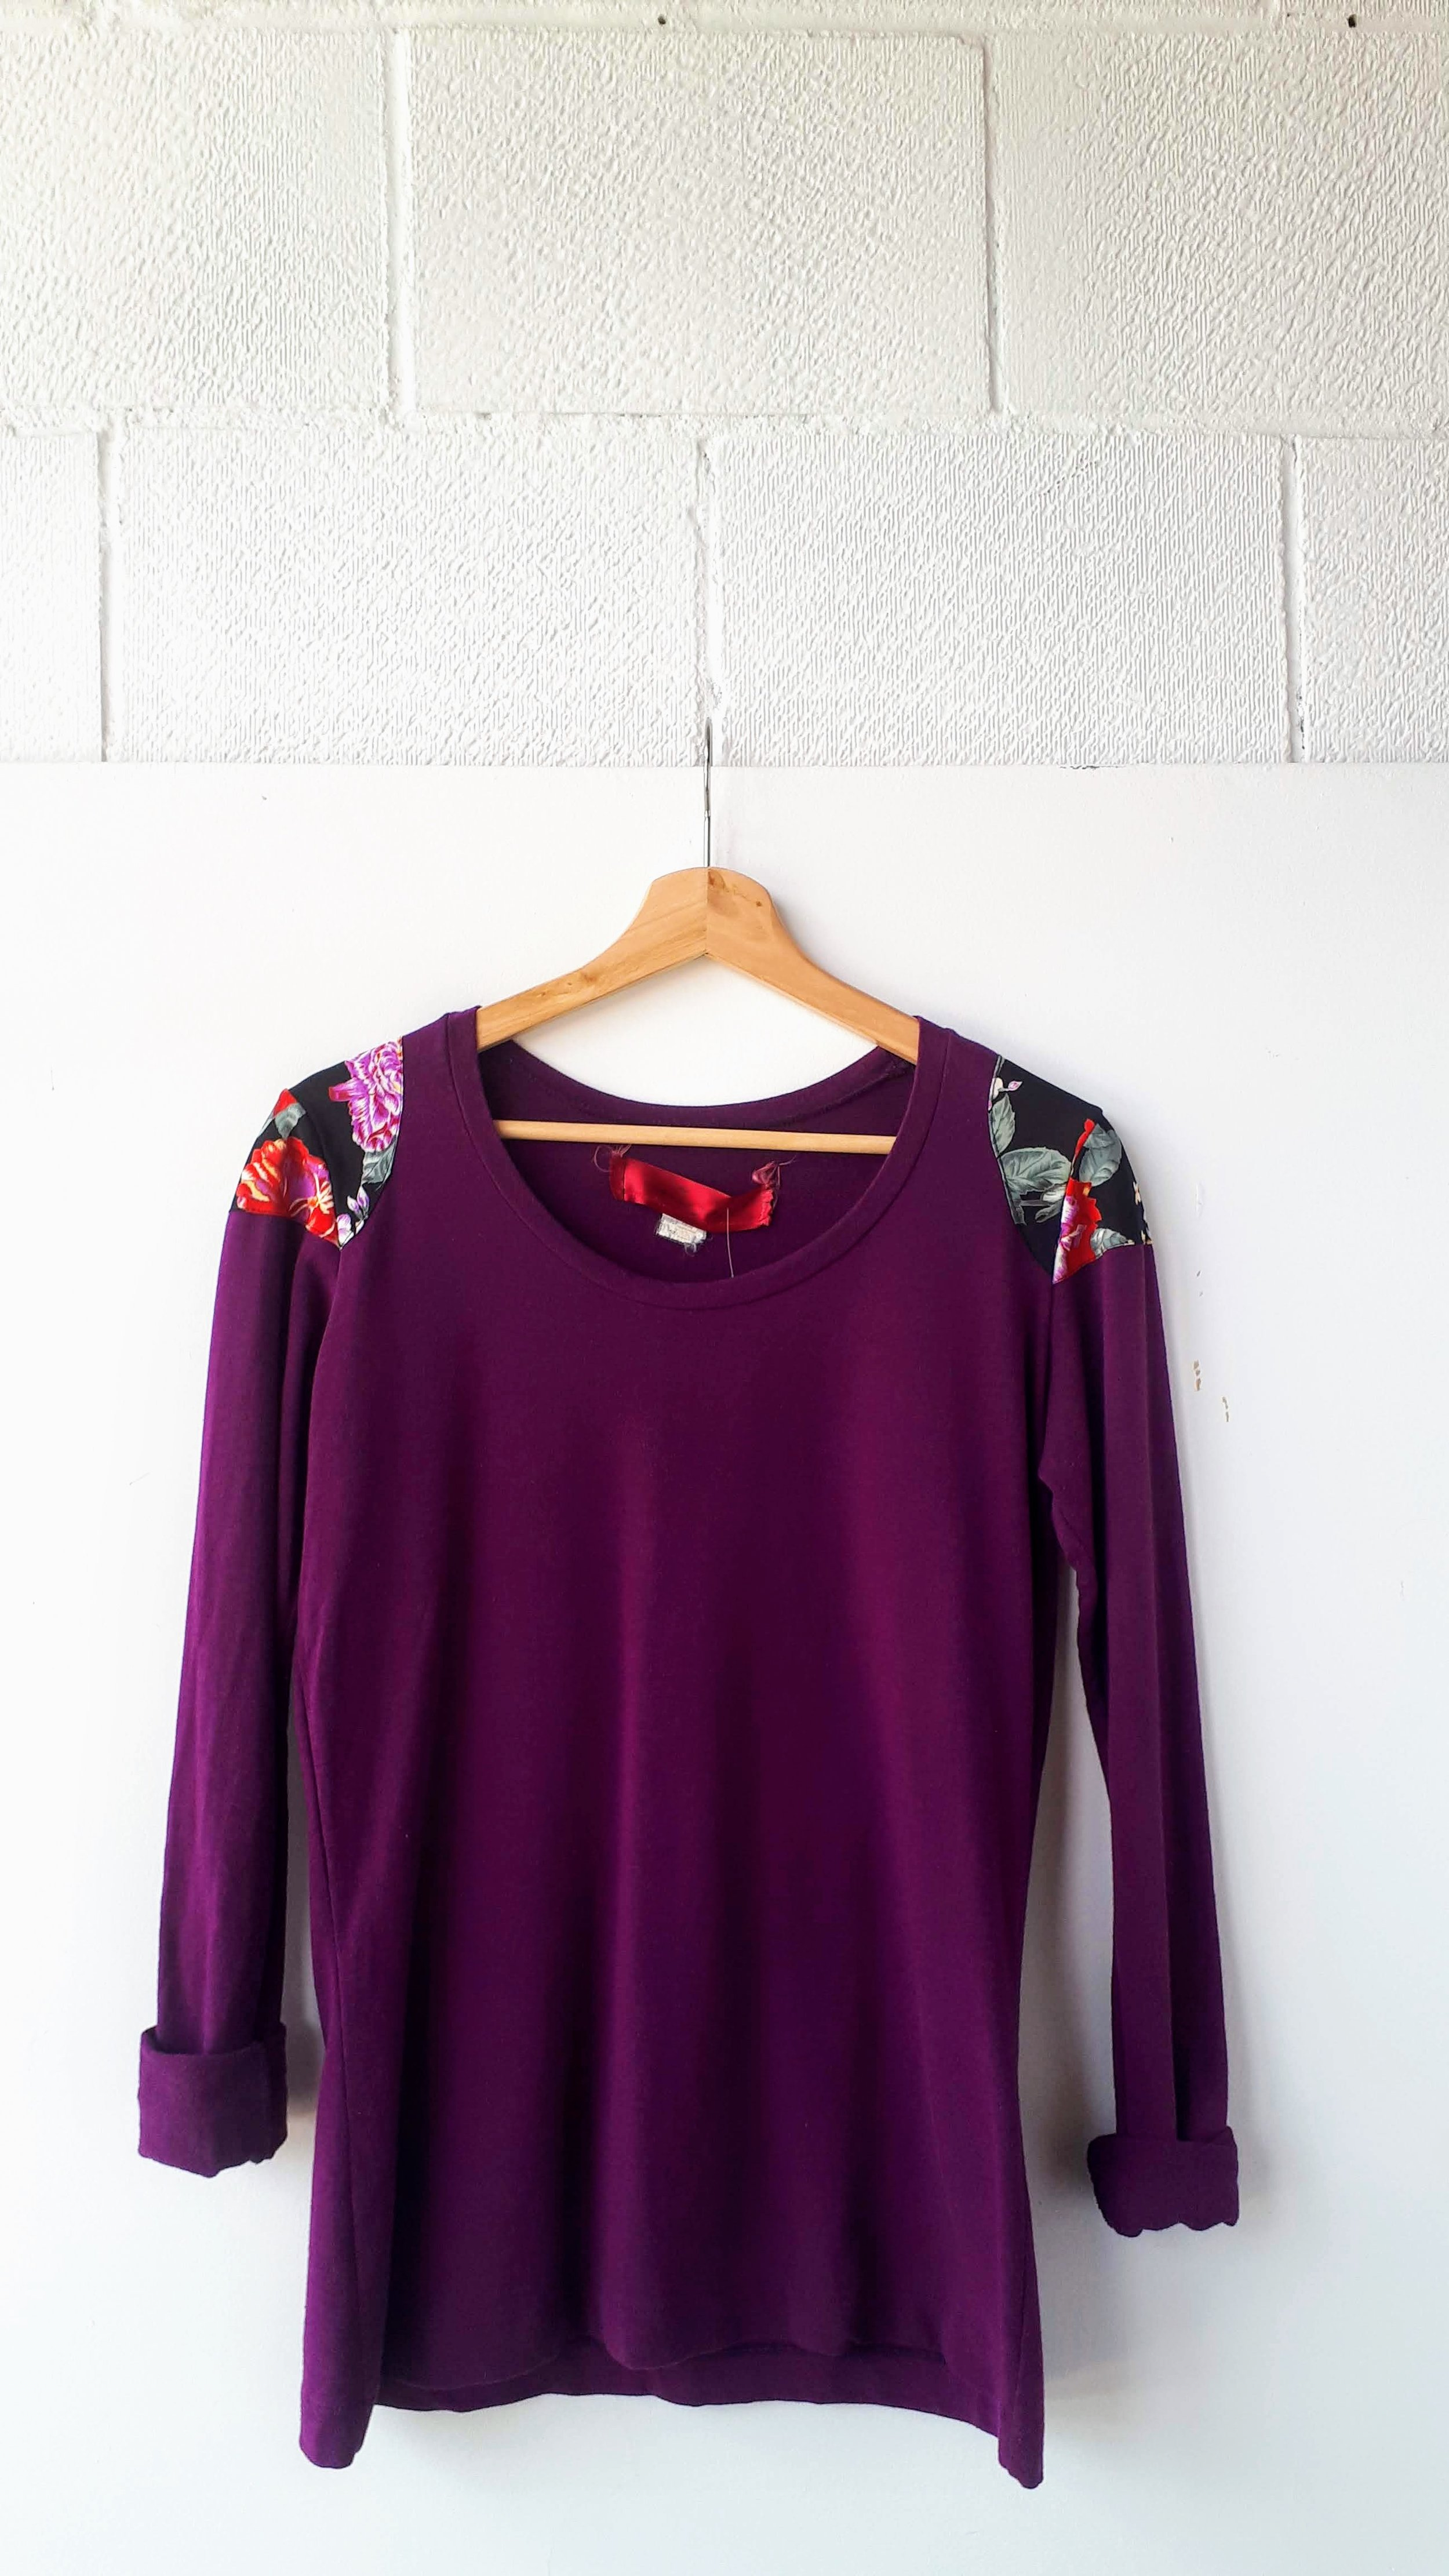 Frigid top; Size M, $28 (on sale for $14!)